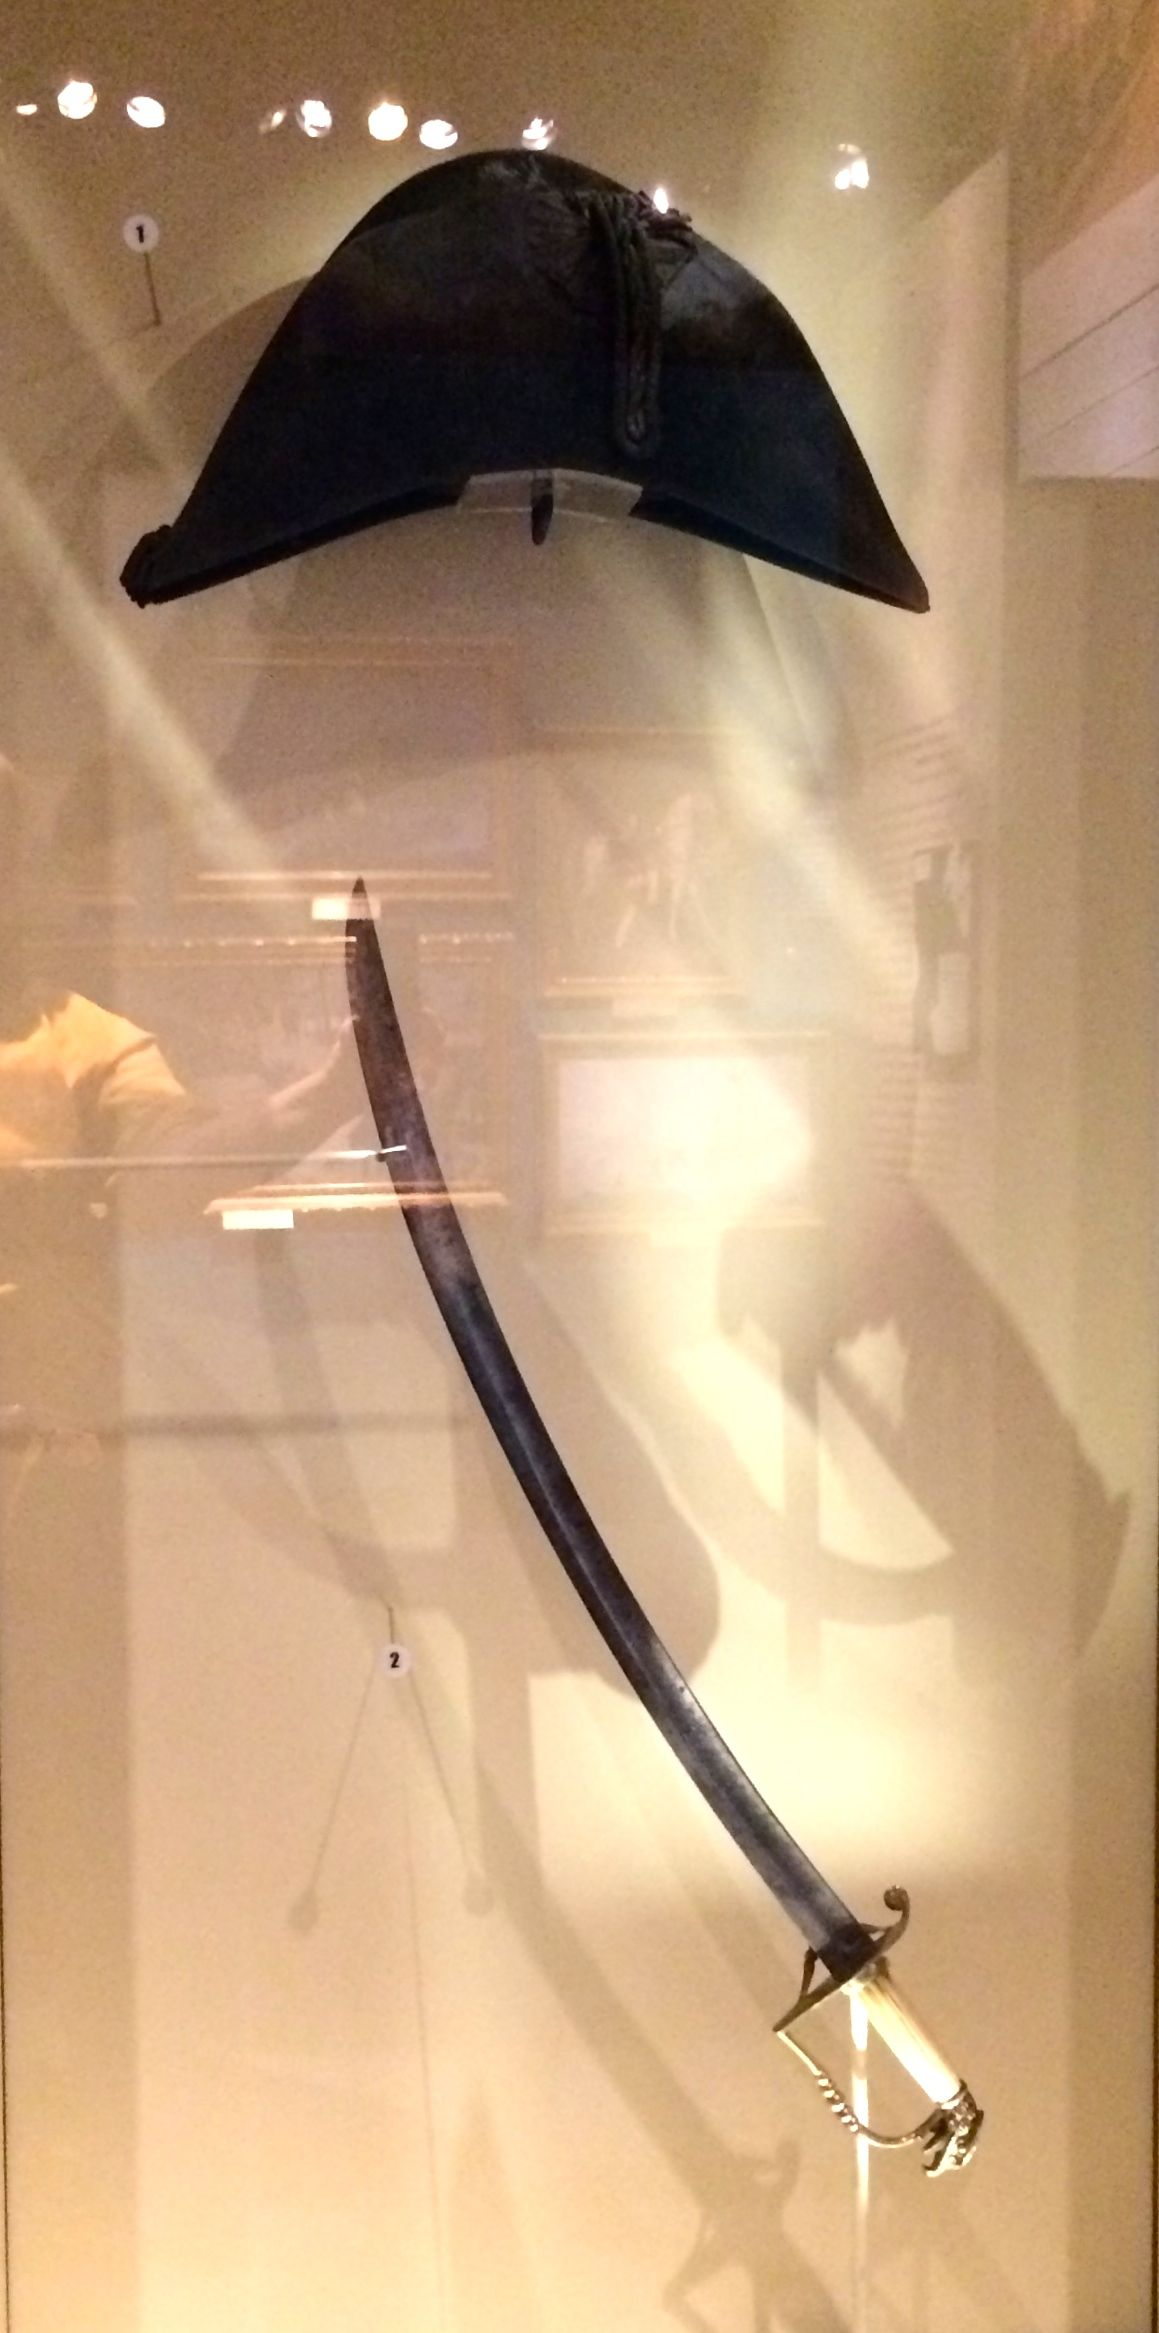 19th century hat and sword